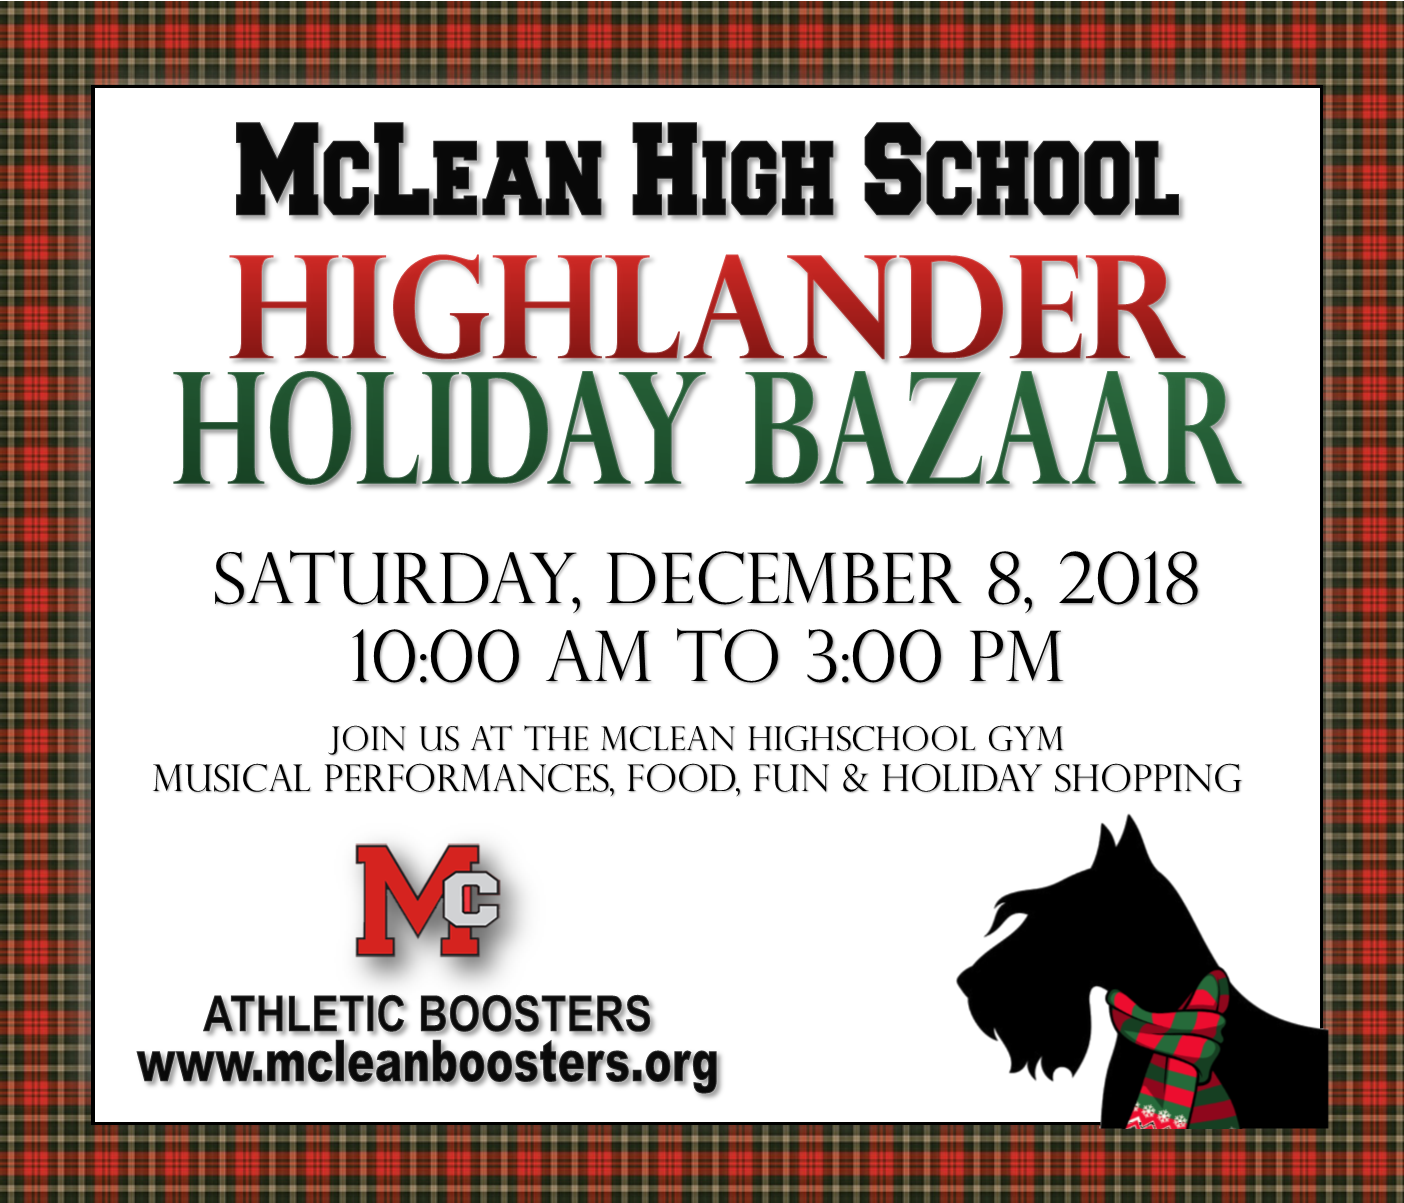 Online advertisement for the 2018 McLean holiday bazaar